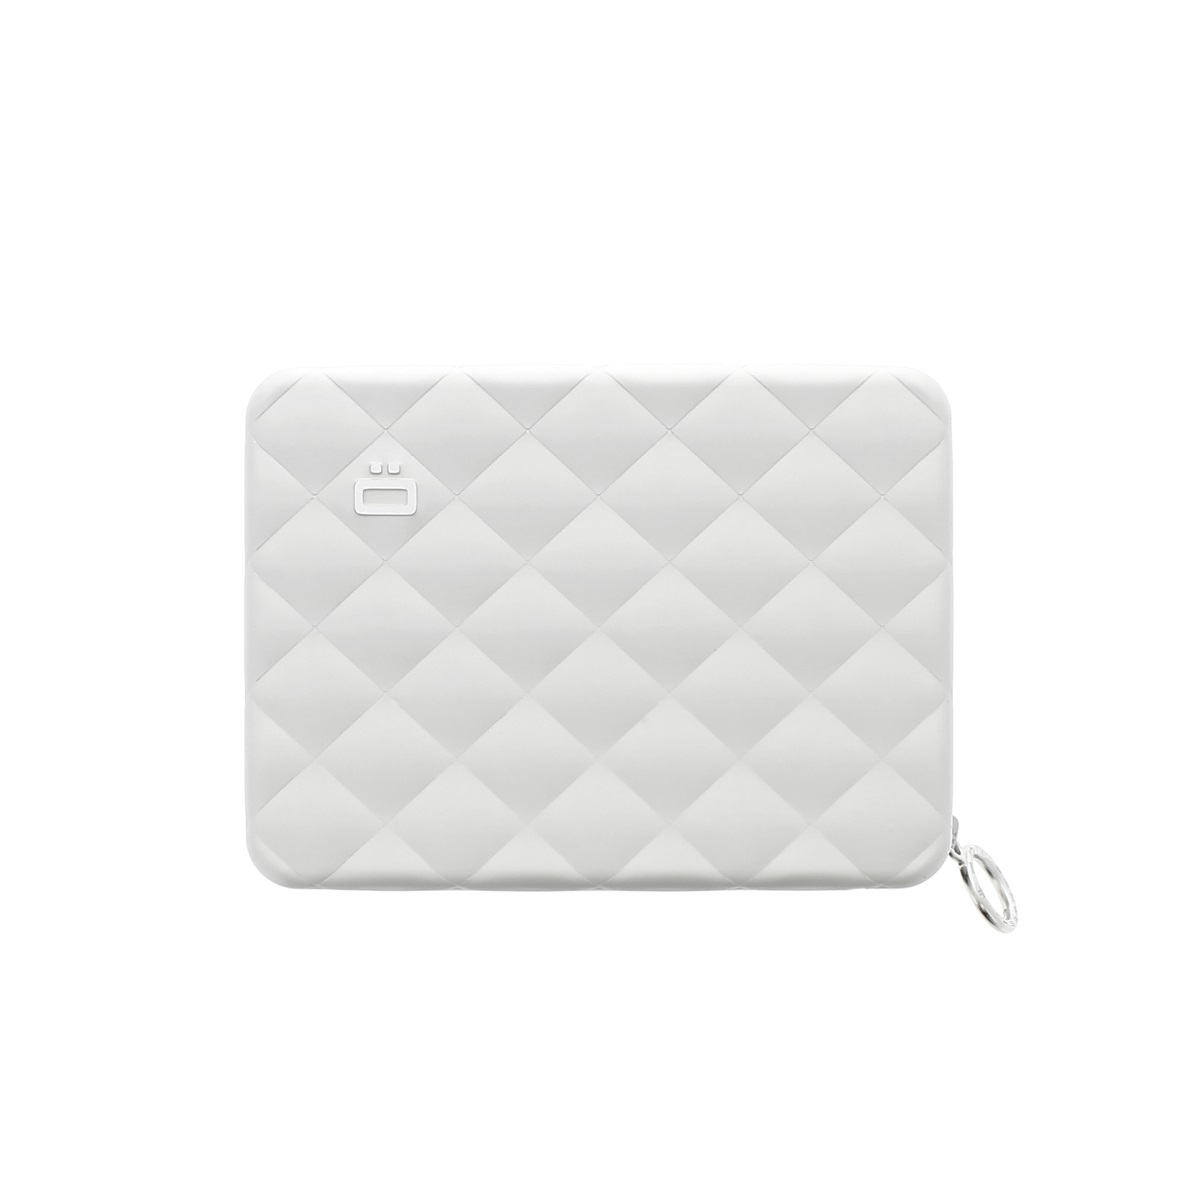 OGON Aluminum Wallet Quilted Passport - Silver